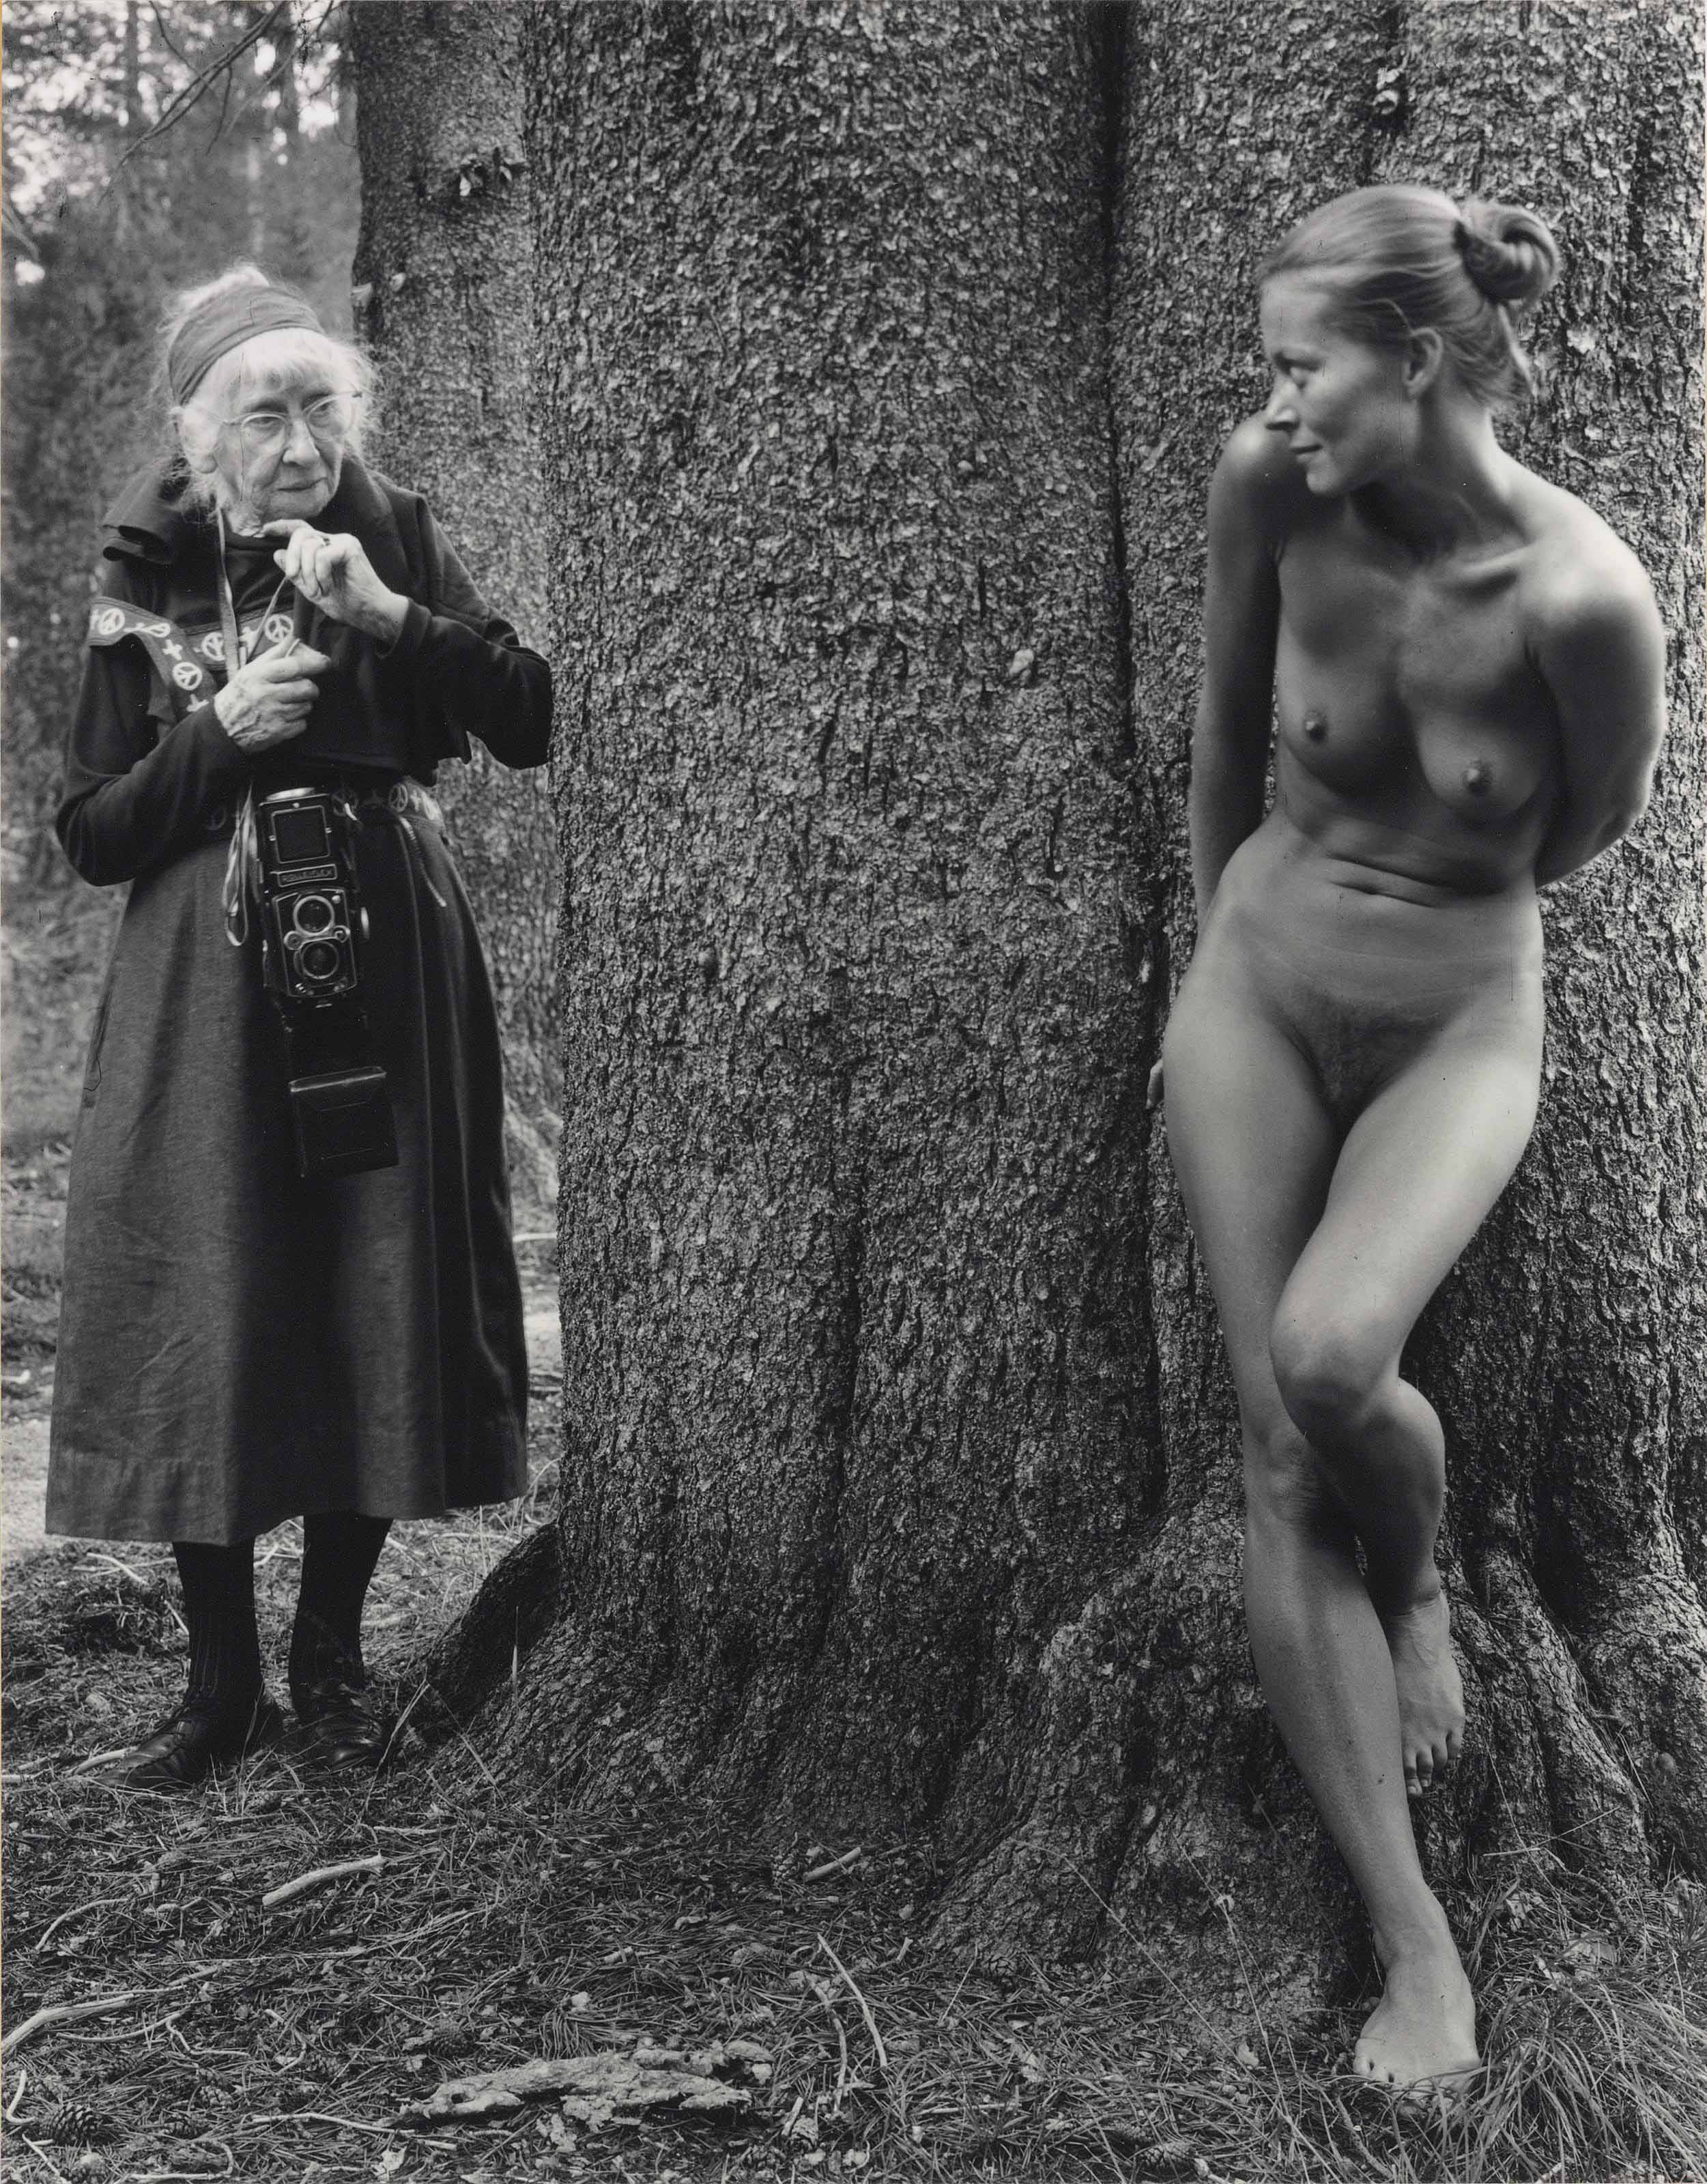 Imogen and Twinka, Yosemite, 1974